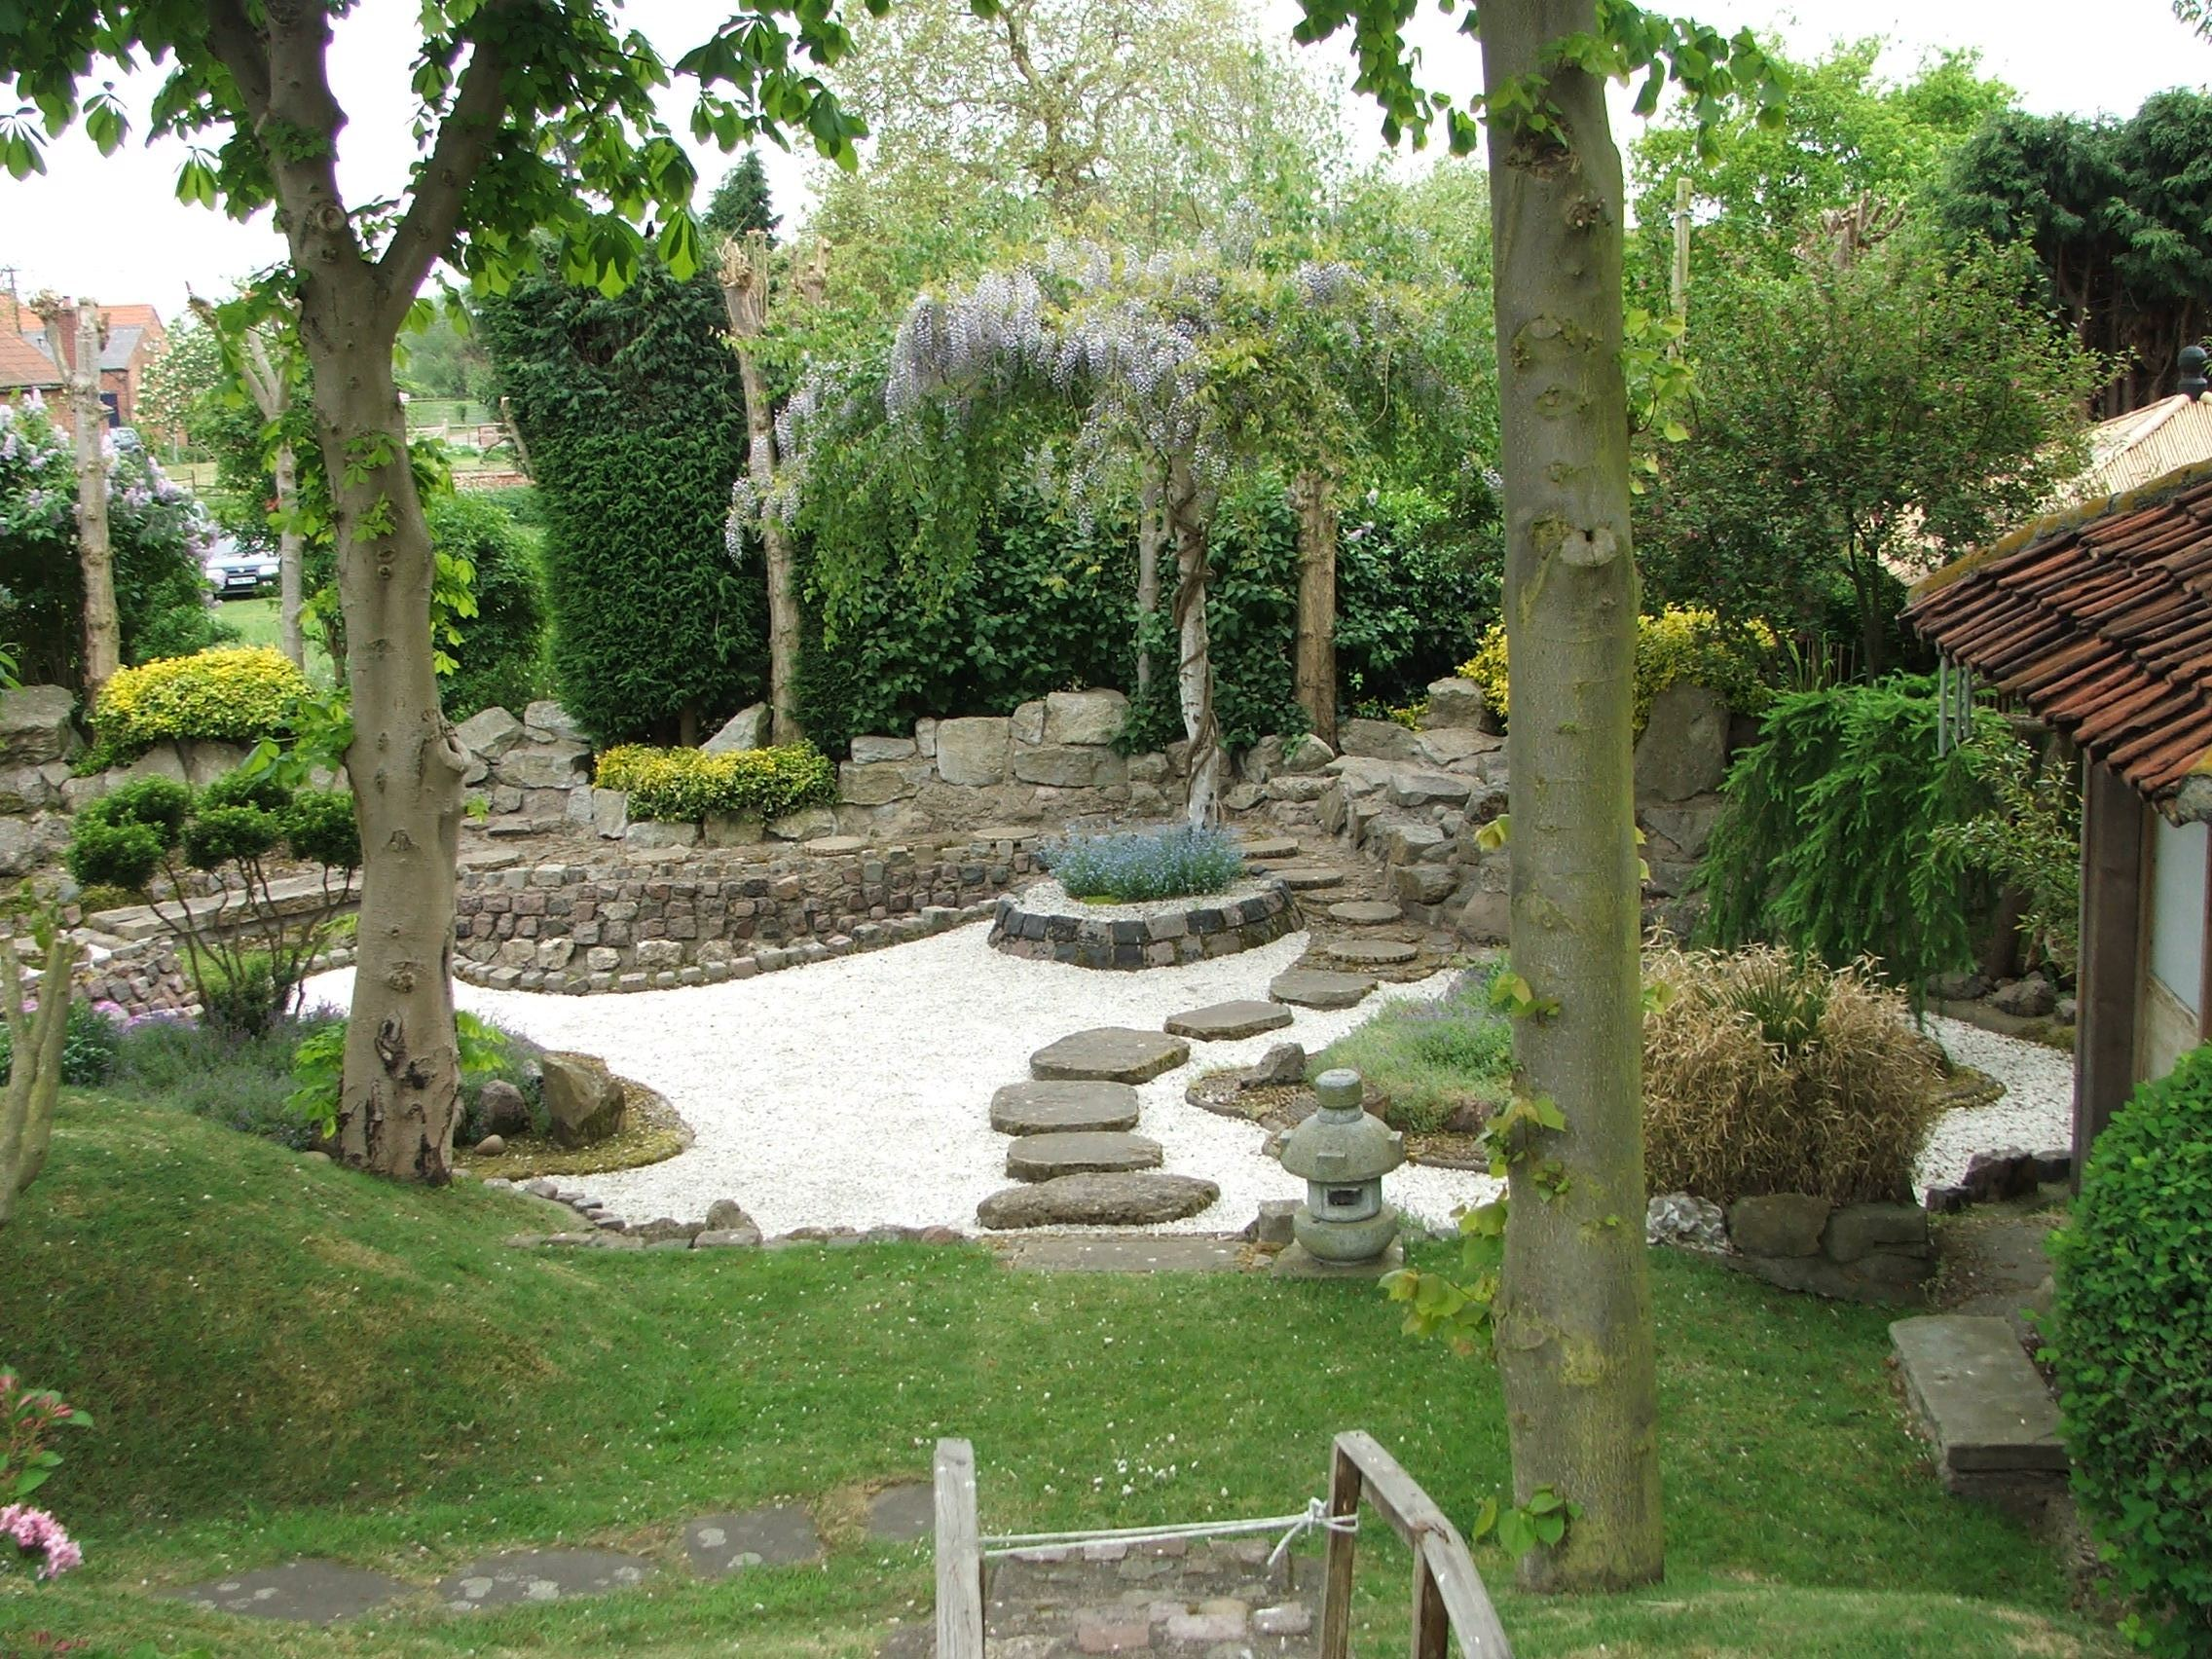 Welcome To My Japanese Gardens Blog-We Have 2 FREE Videos For YOU ...